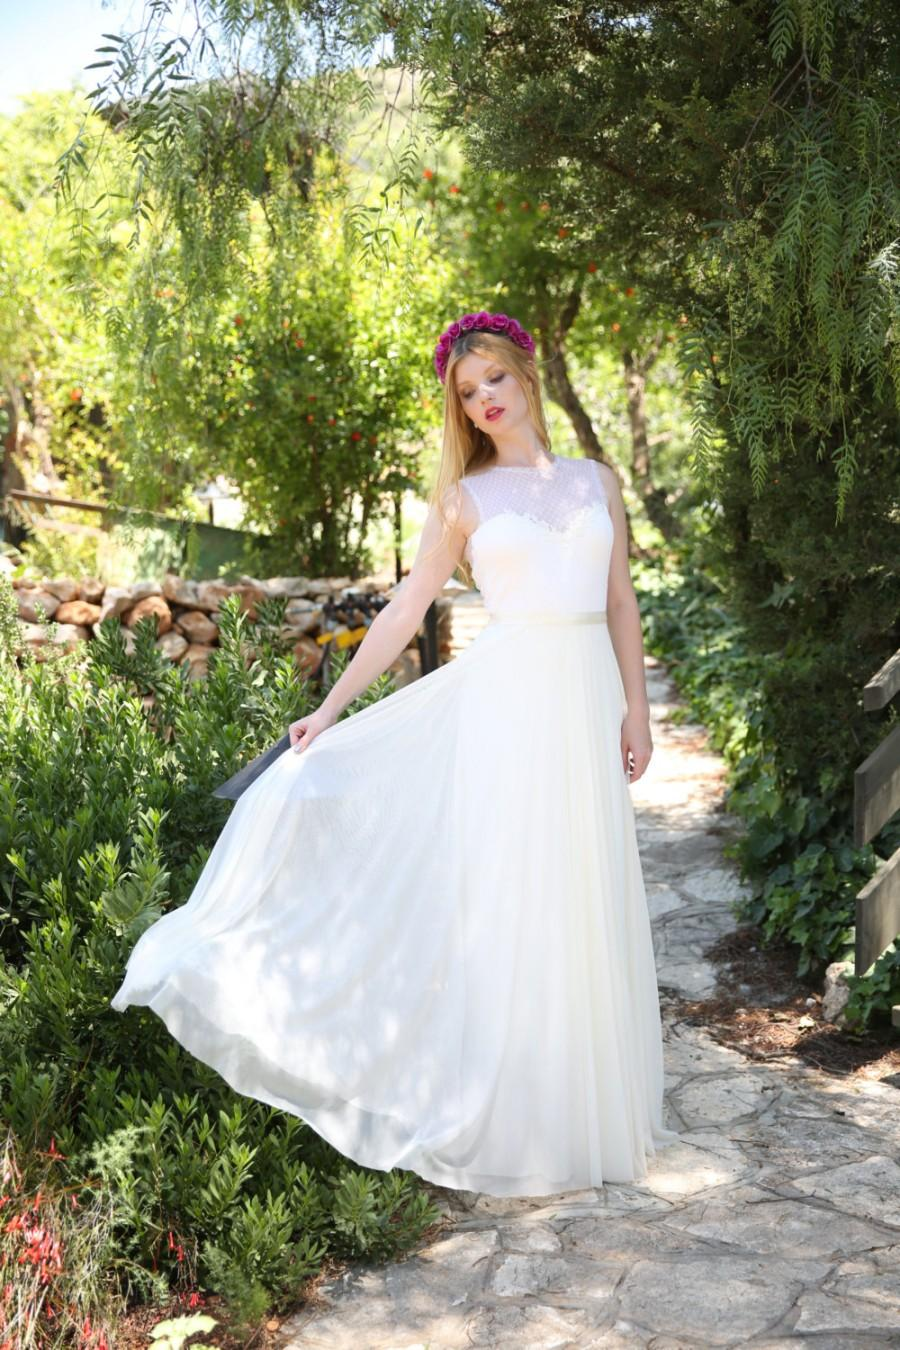 2d823f16f185 Leila - Romantic wedding dress with lace top and chiffon skirt, boho  wedding dress, backless wedding dress, beach wedding dress